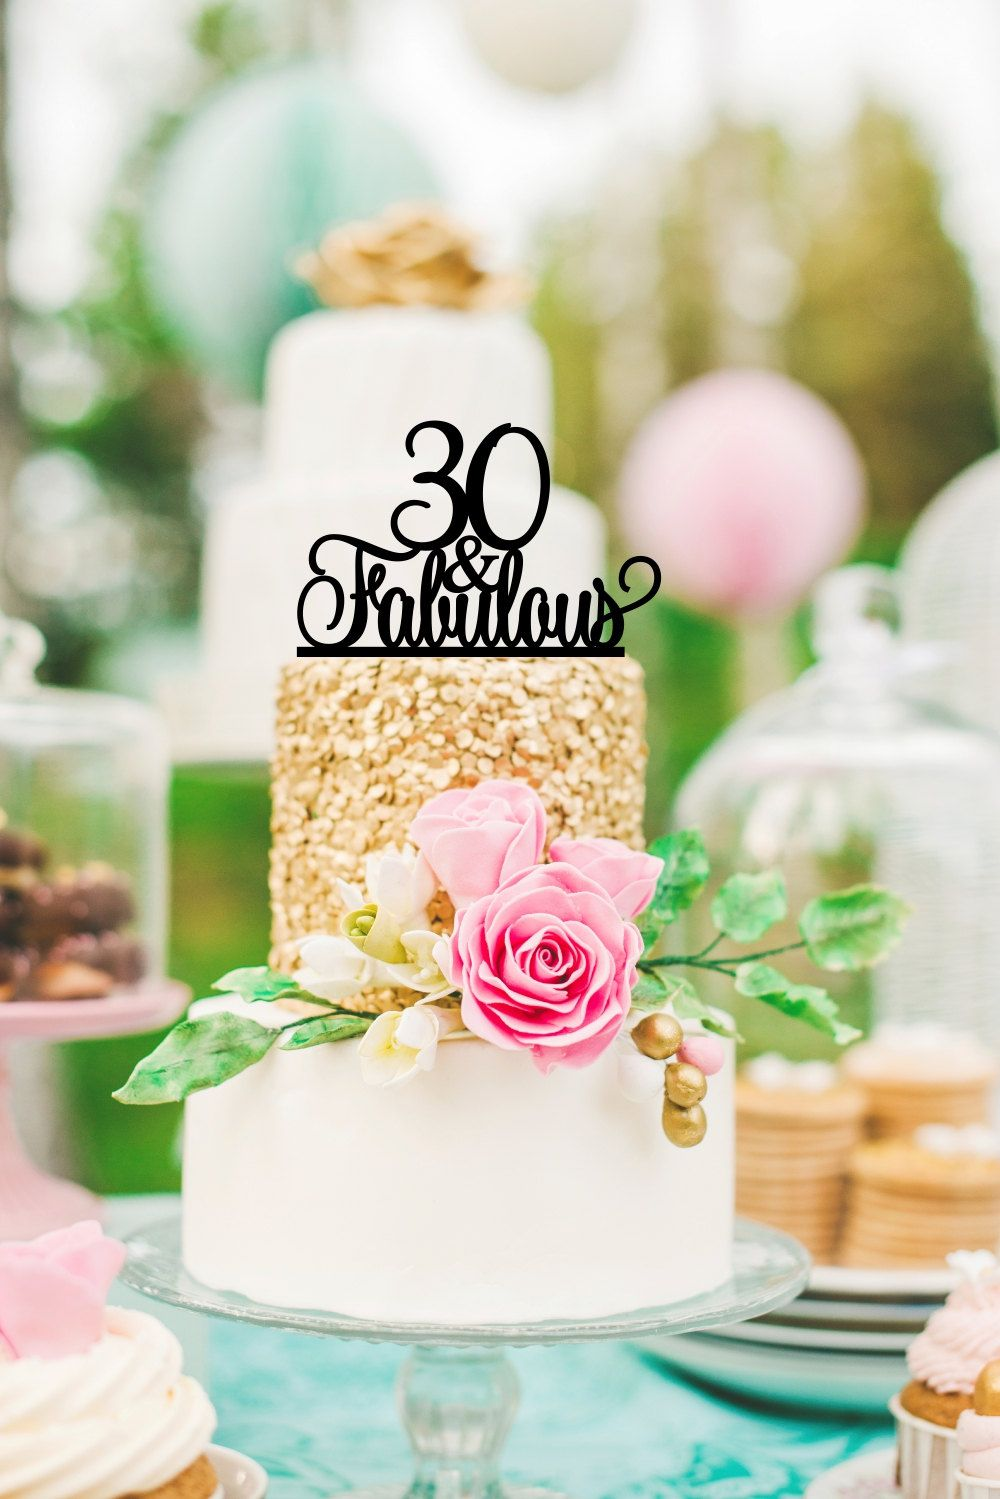 Original 30 And Fabulous 30th Birthday Cake Topper 0167 30th